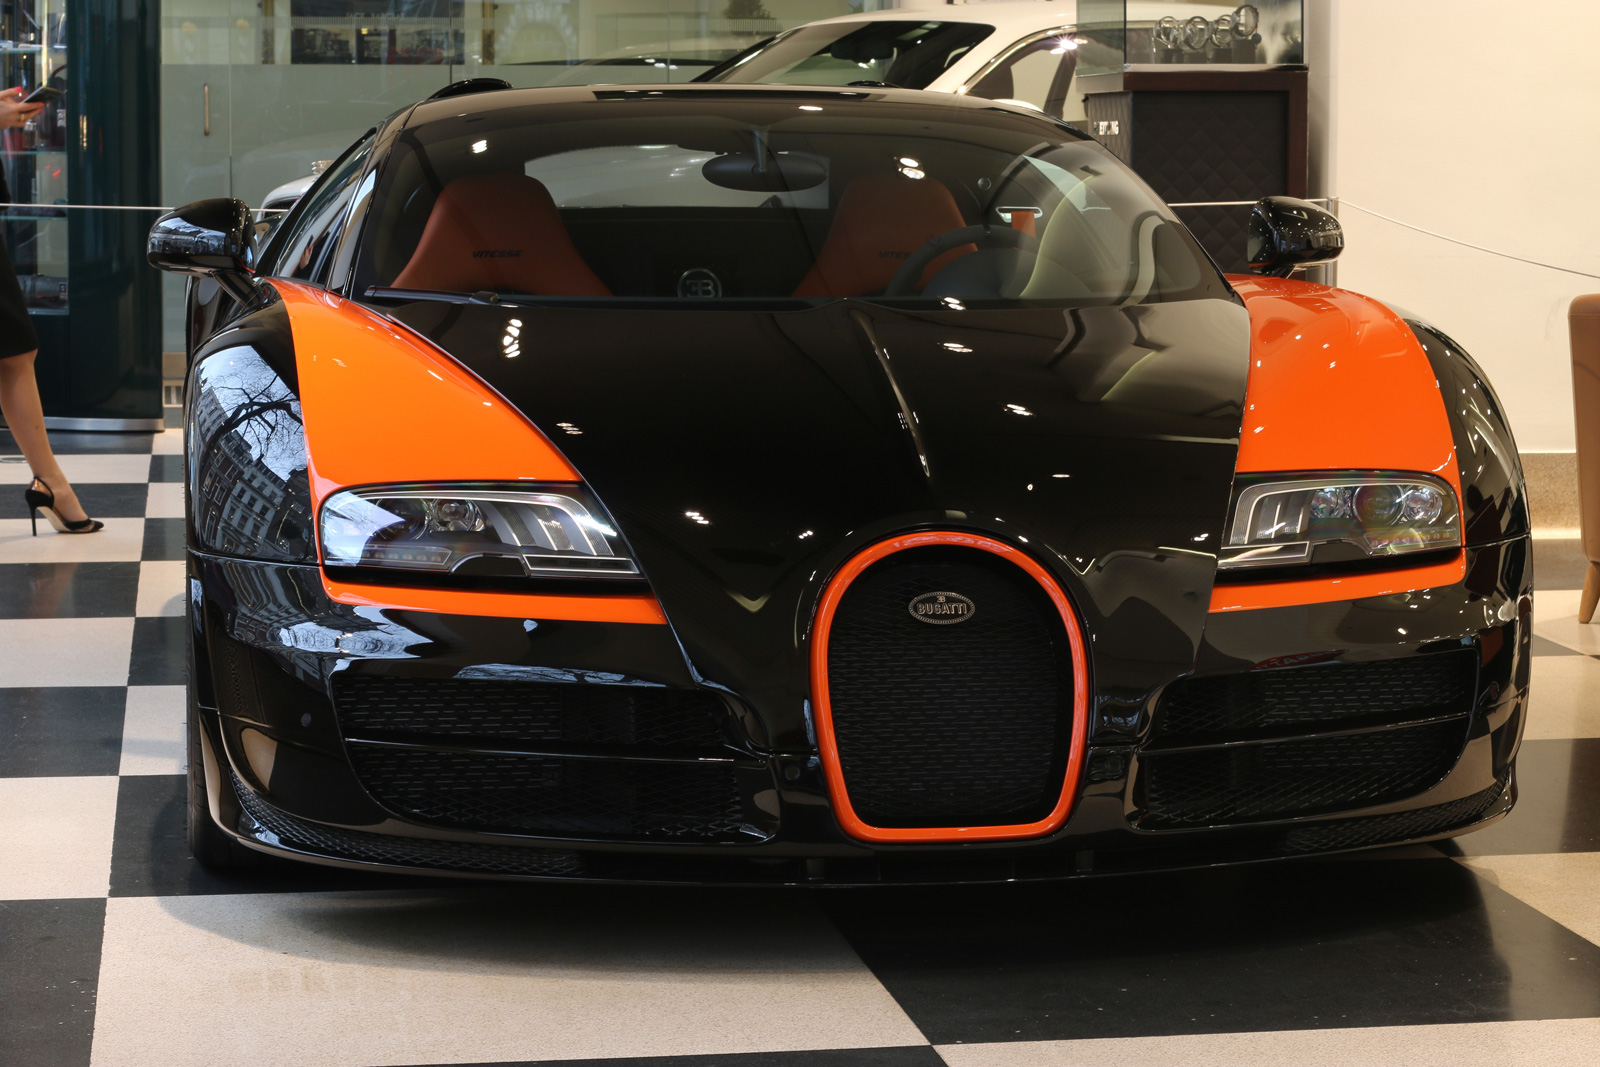 Bugatti Veyron Quot World Record Car Quot Up For Sale Exotic Car